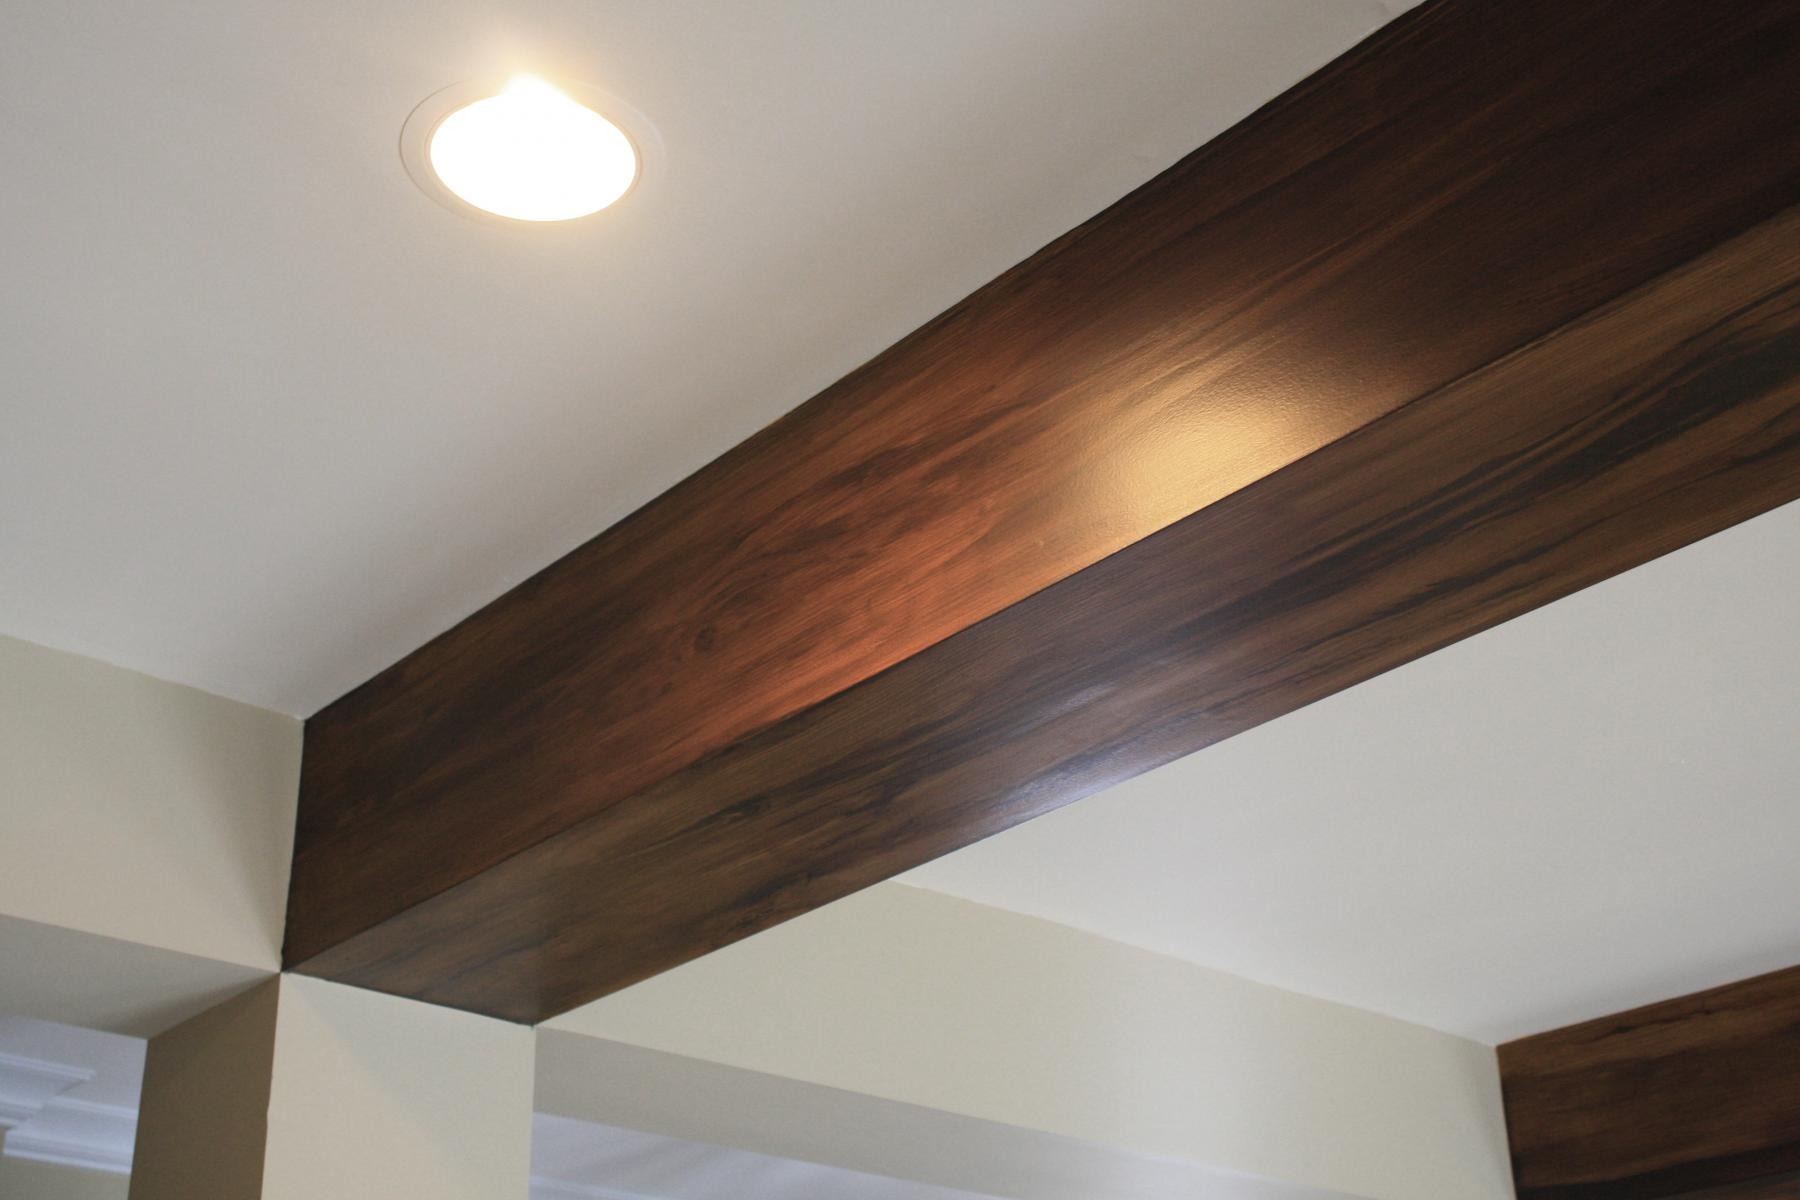 Faux wood beams in this Brentwood customers great room ceiling.